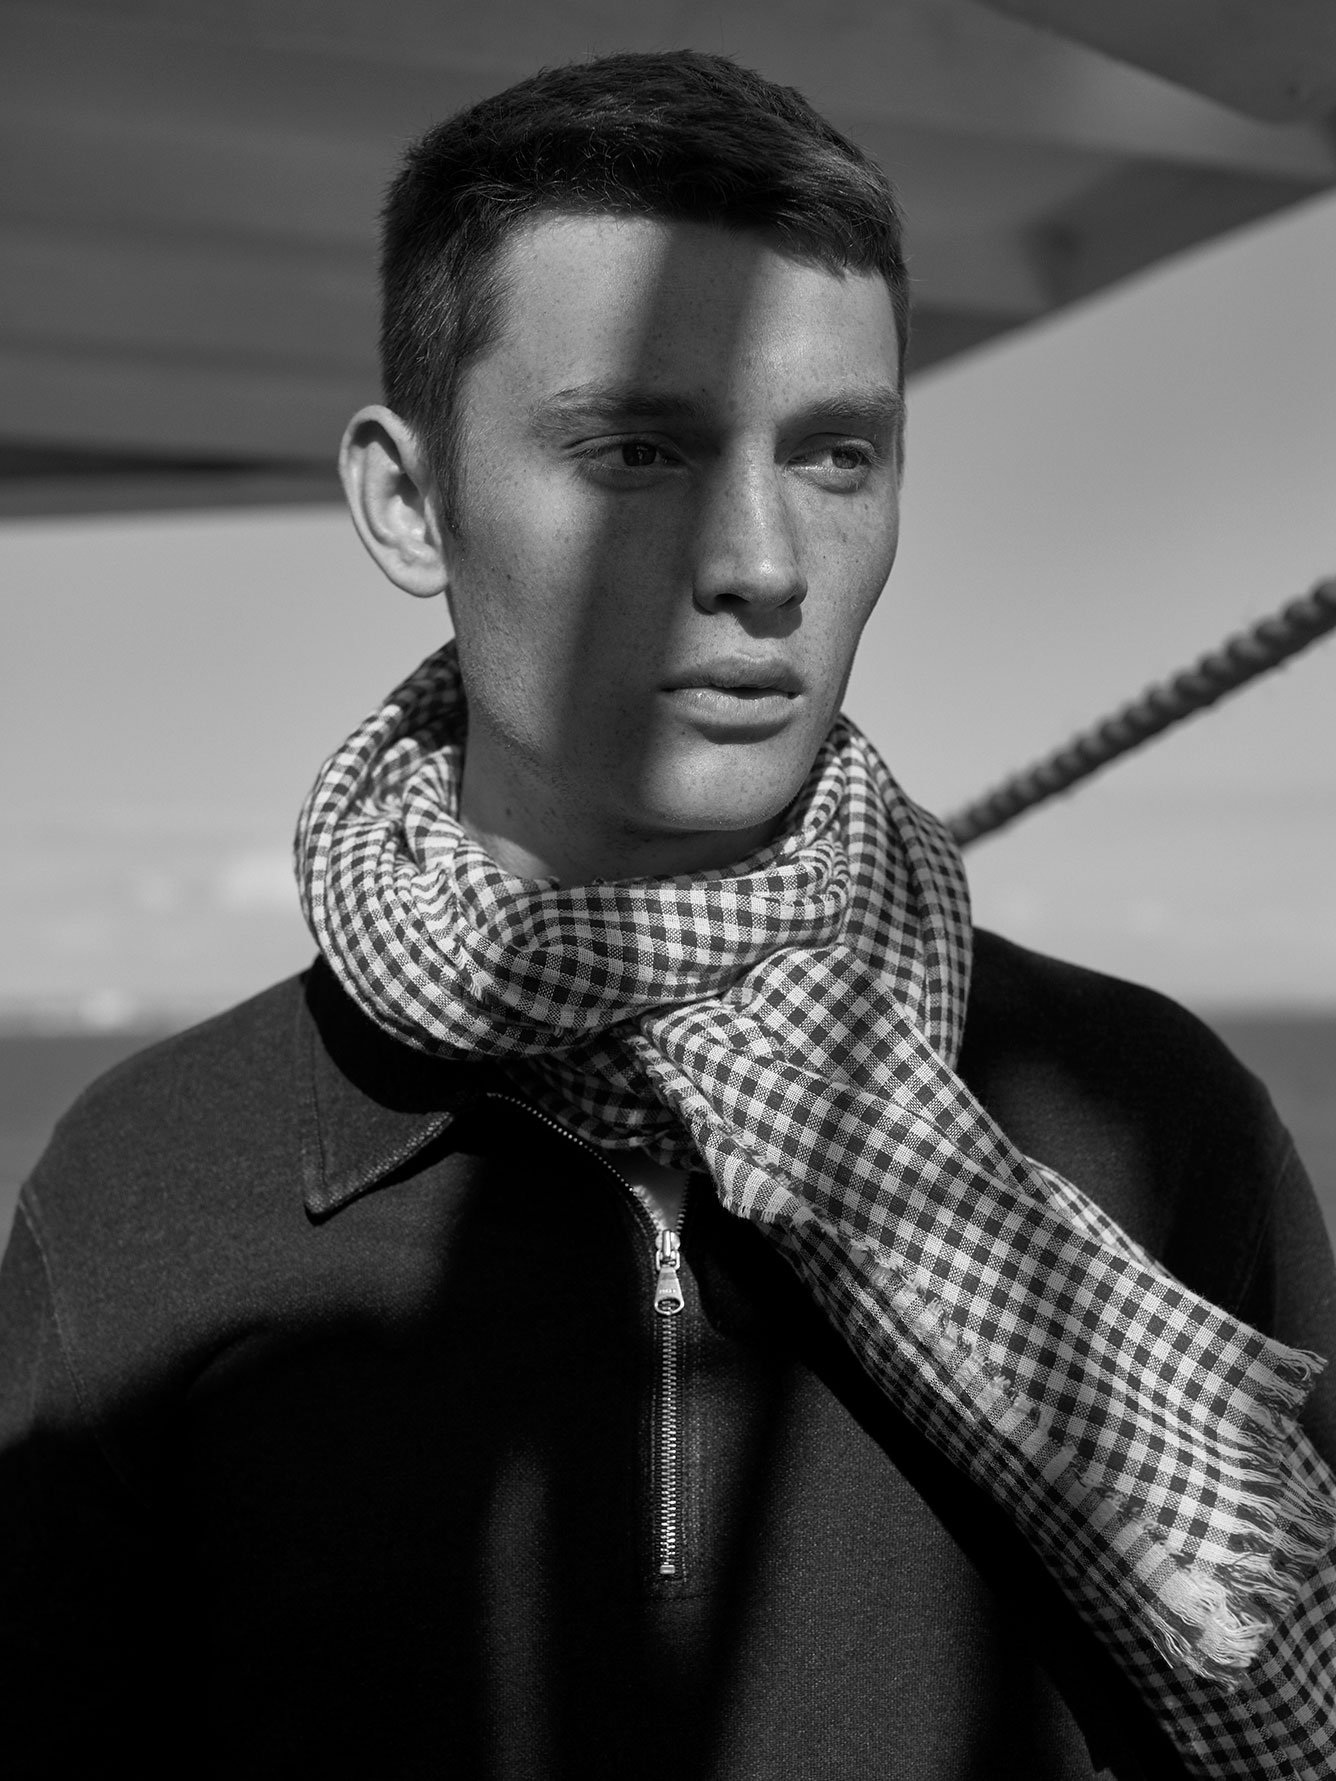 Black and white photo of male model wearing black and white gingham scarf